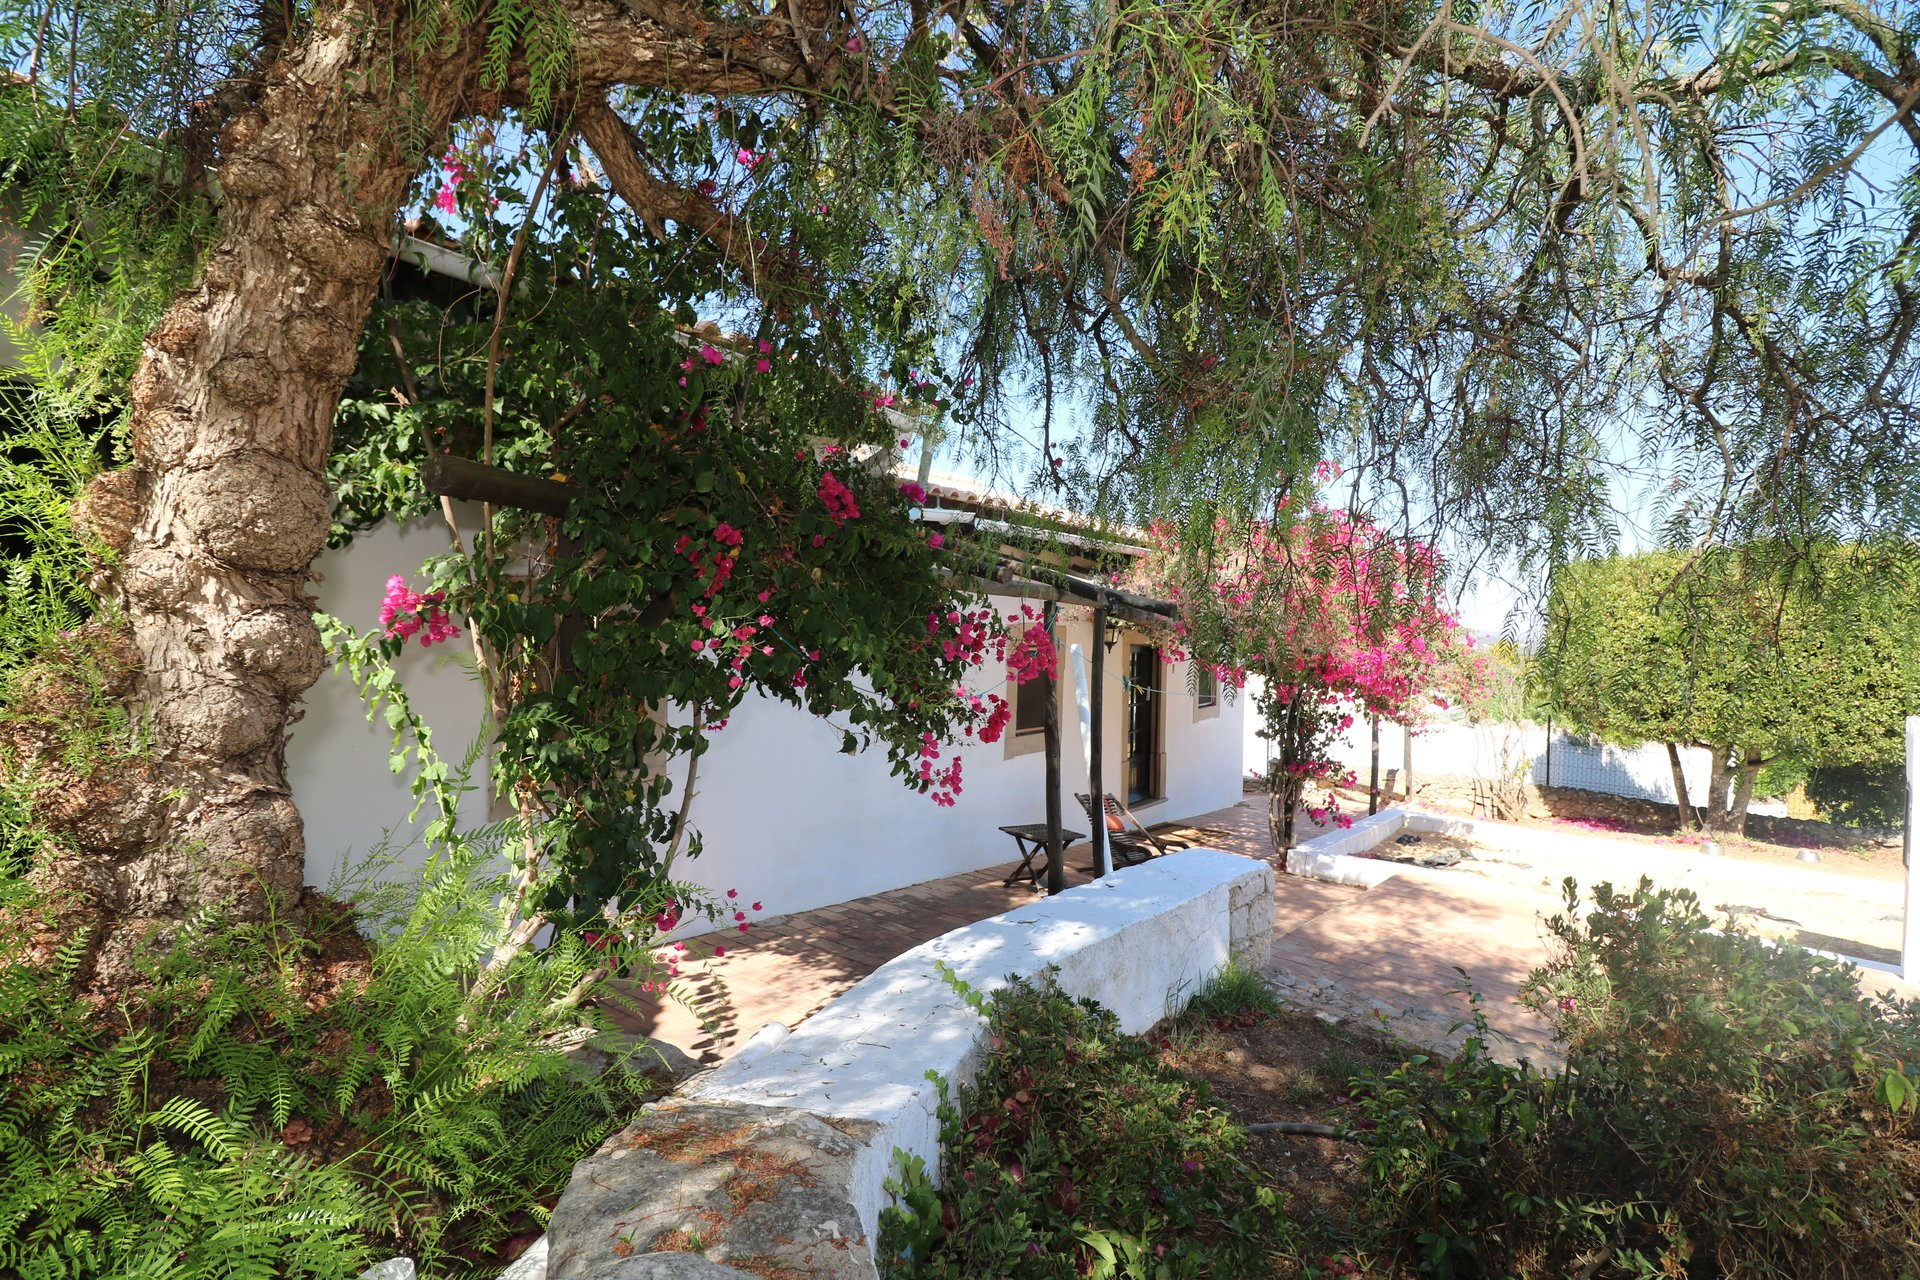 4 Bedroom House Sao Bras de Alportel, Central Algarve Ref: JV10380